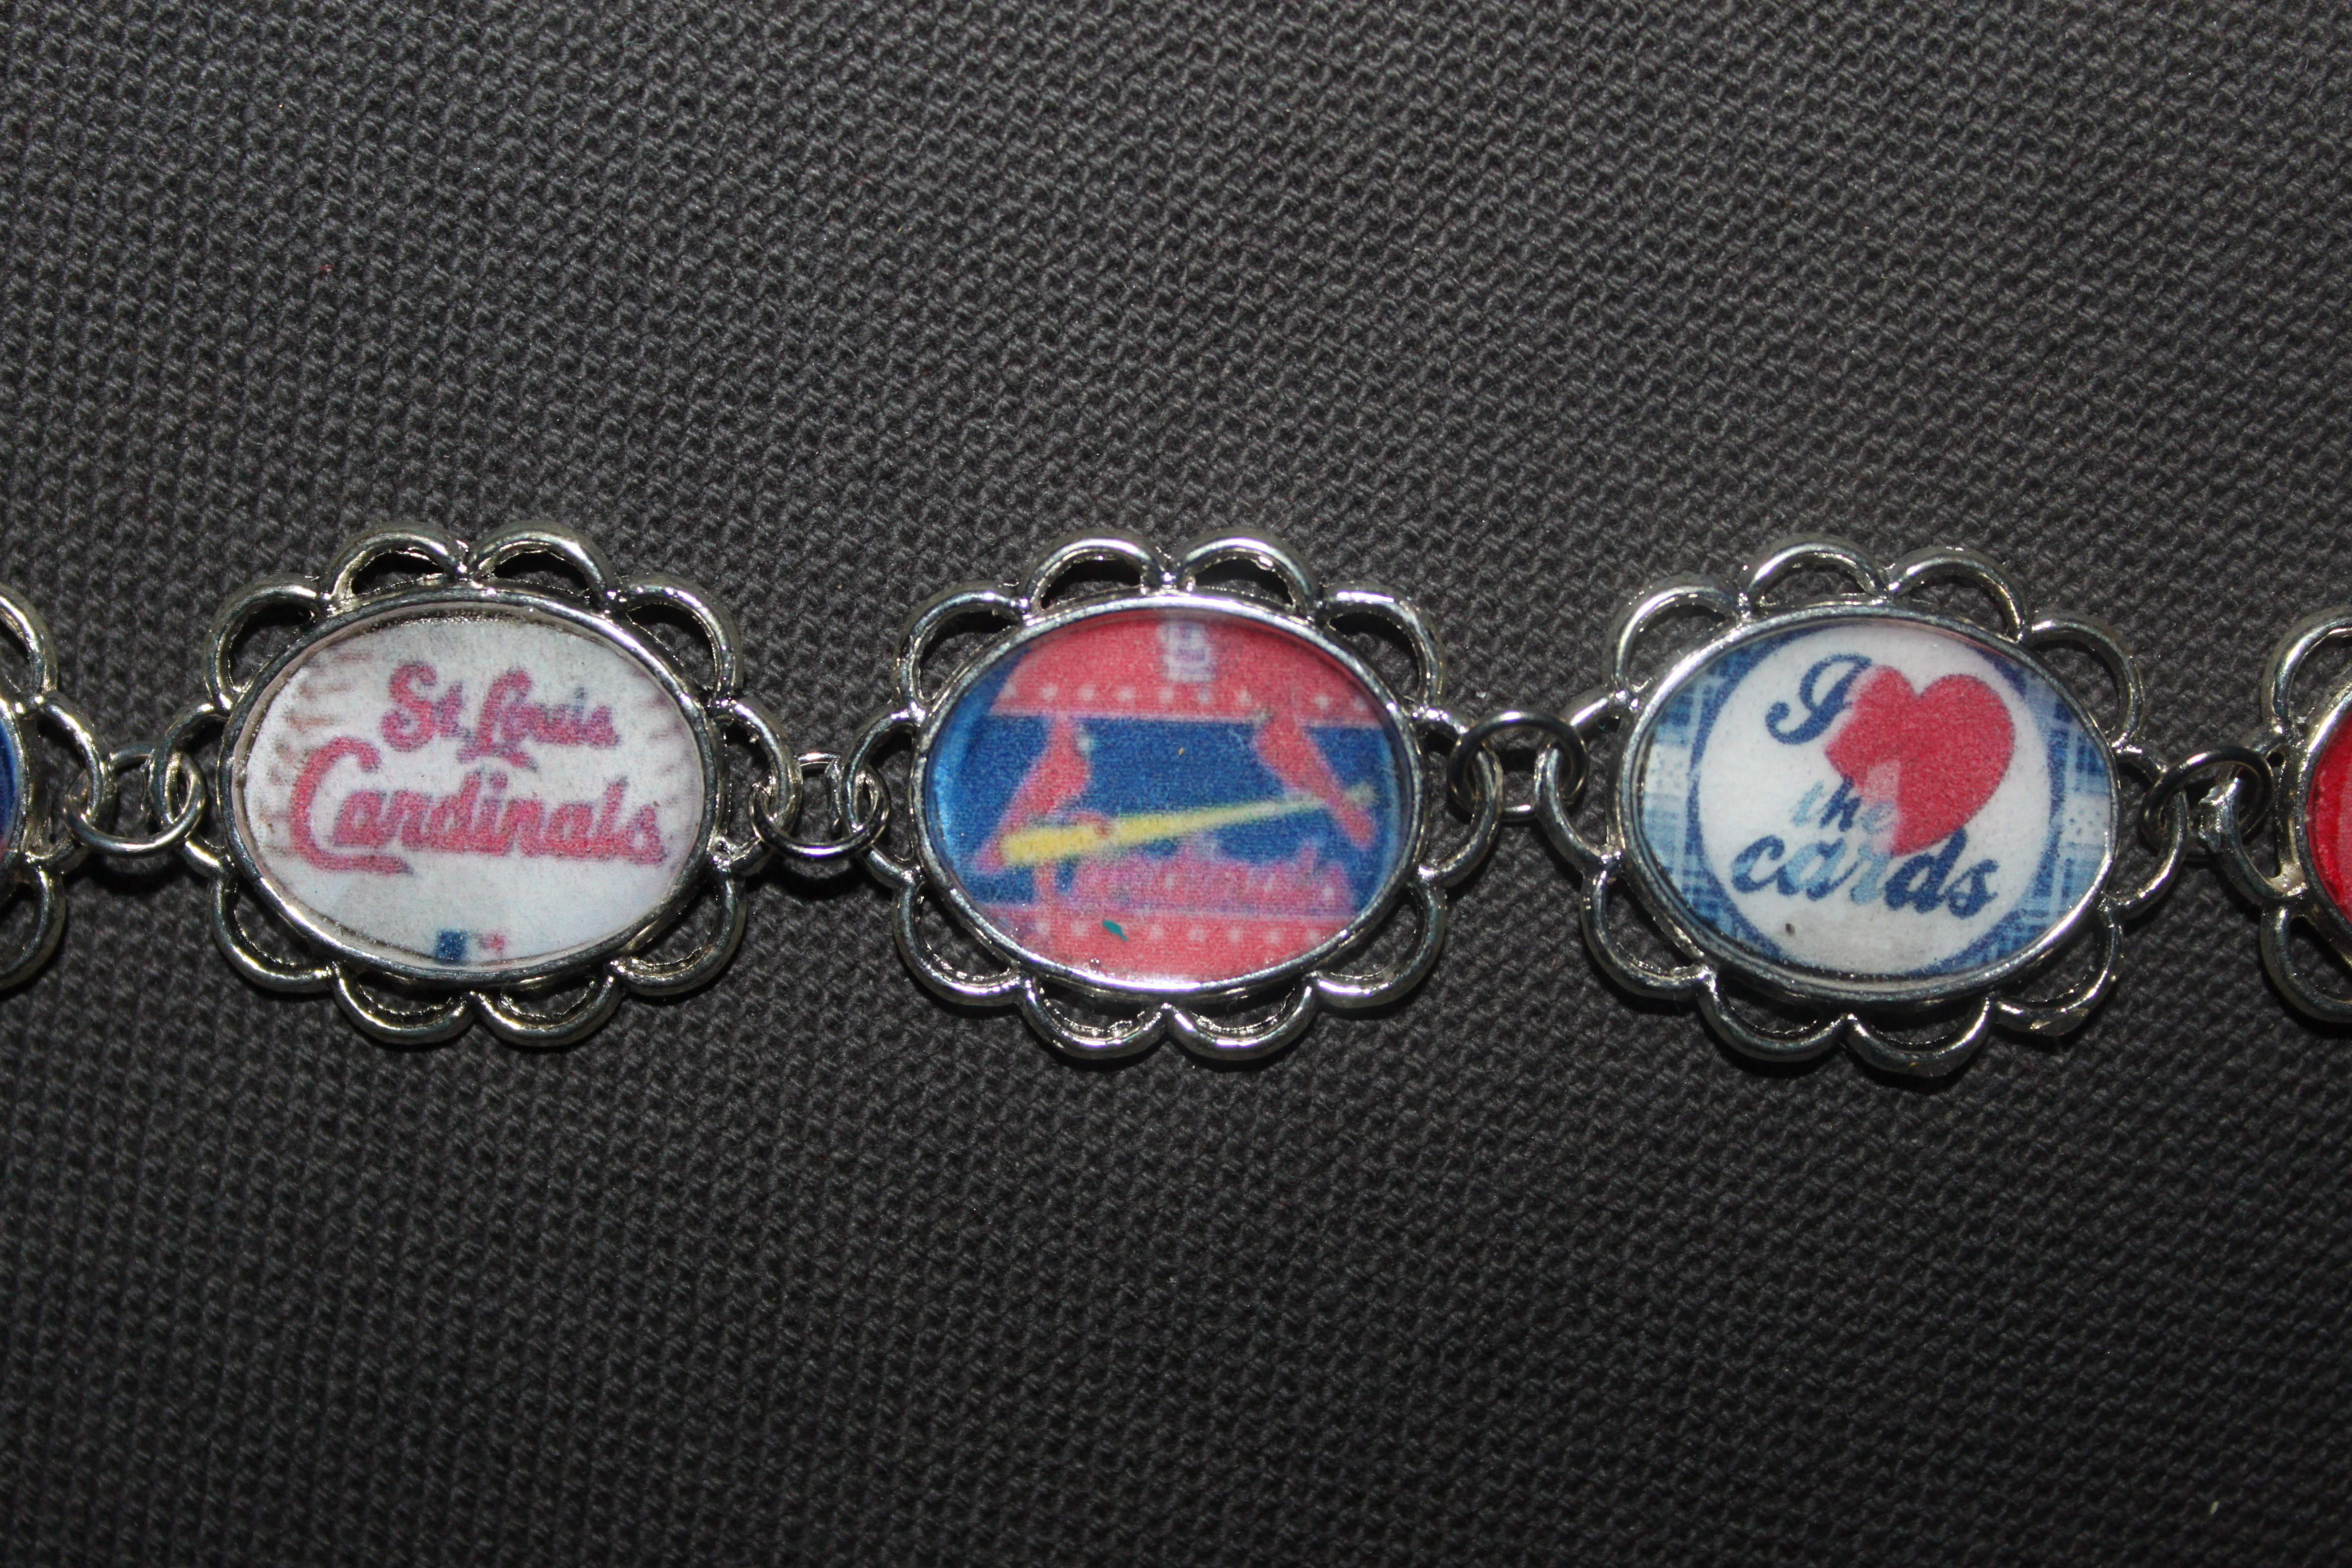 St Louis Cardinals Images Bracelet For Her Hd Wallpaper And Background Photos